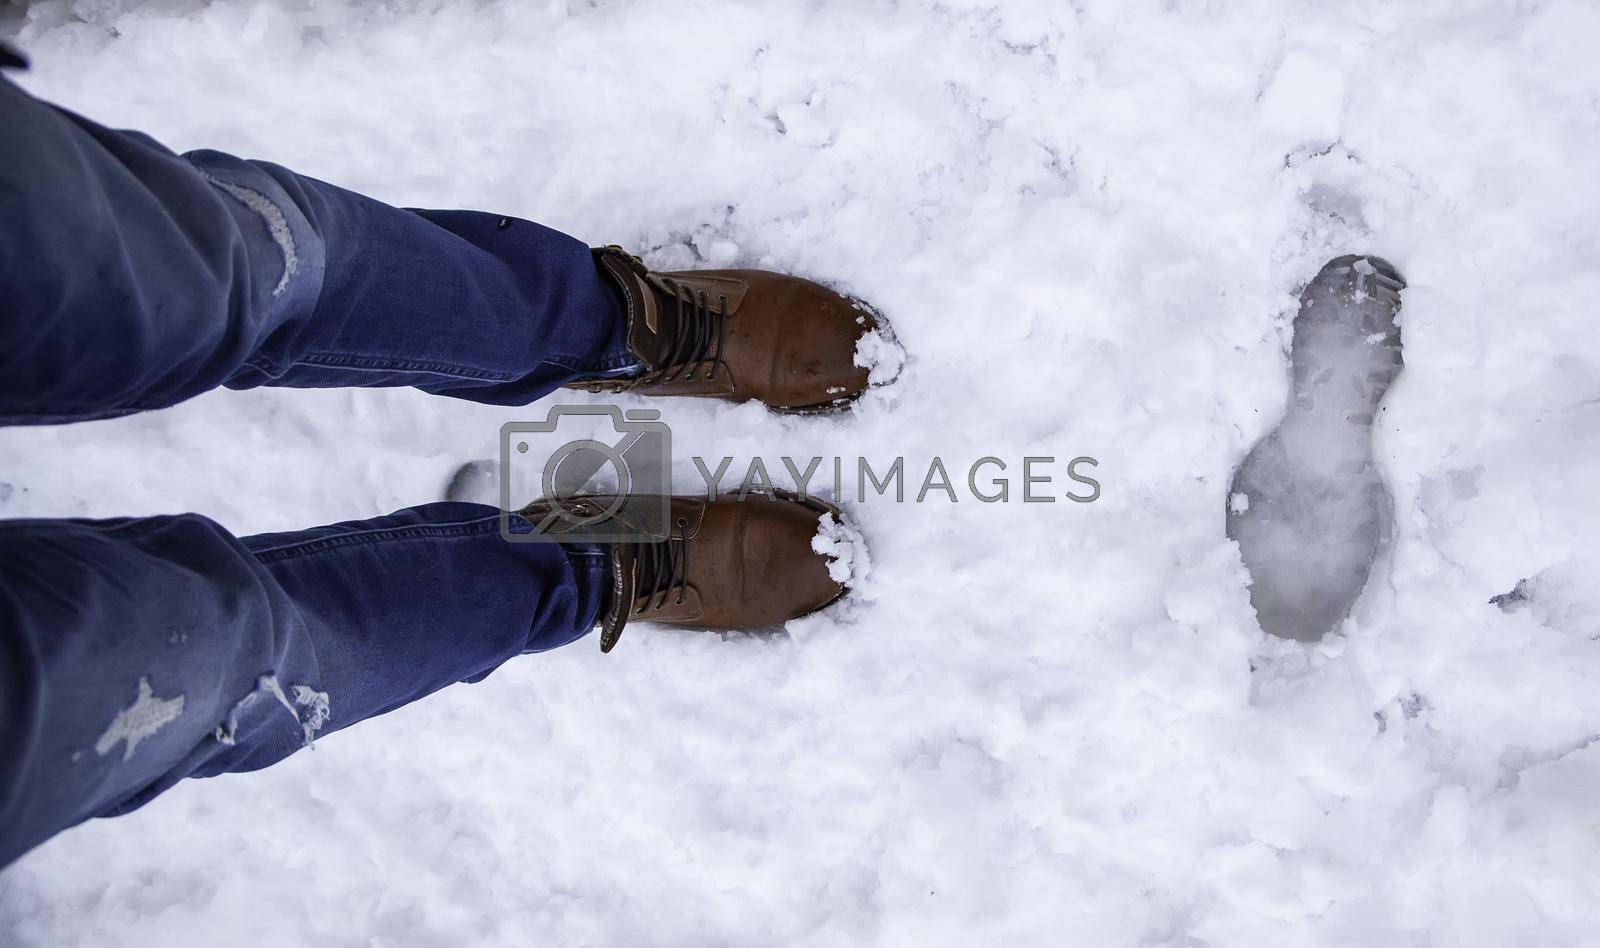 Detail of men's boots on a snowy day in winter, cold and ice